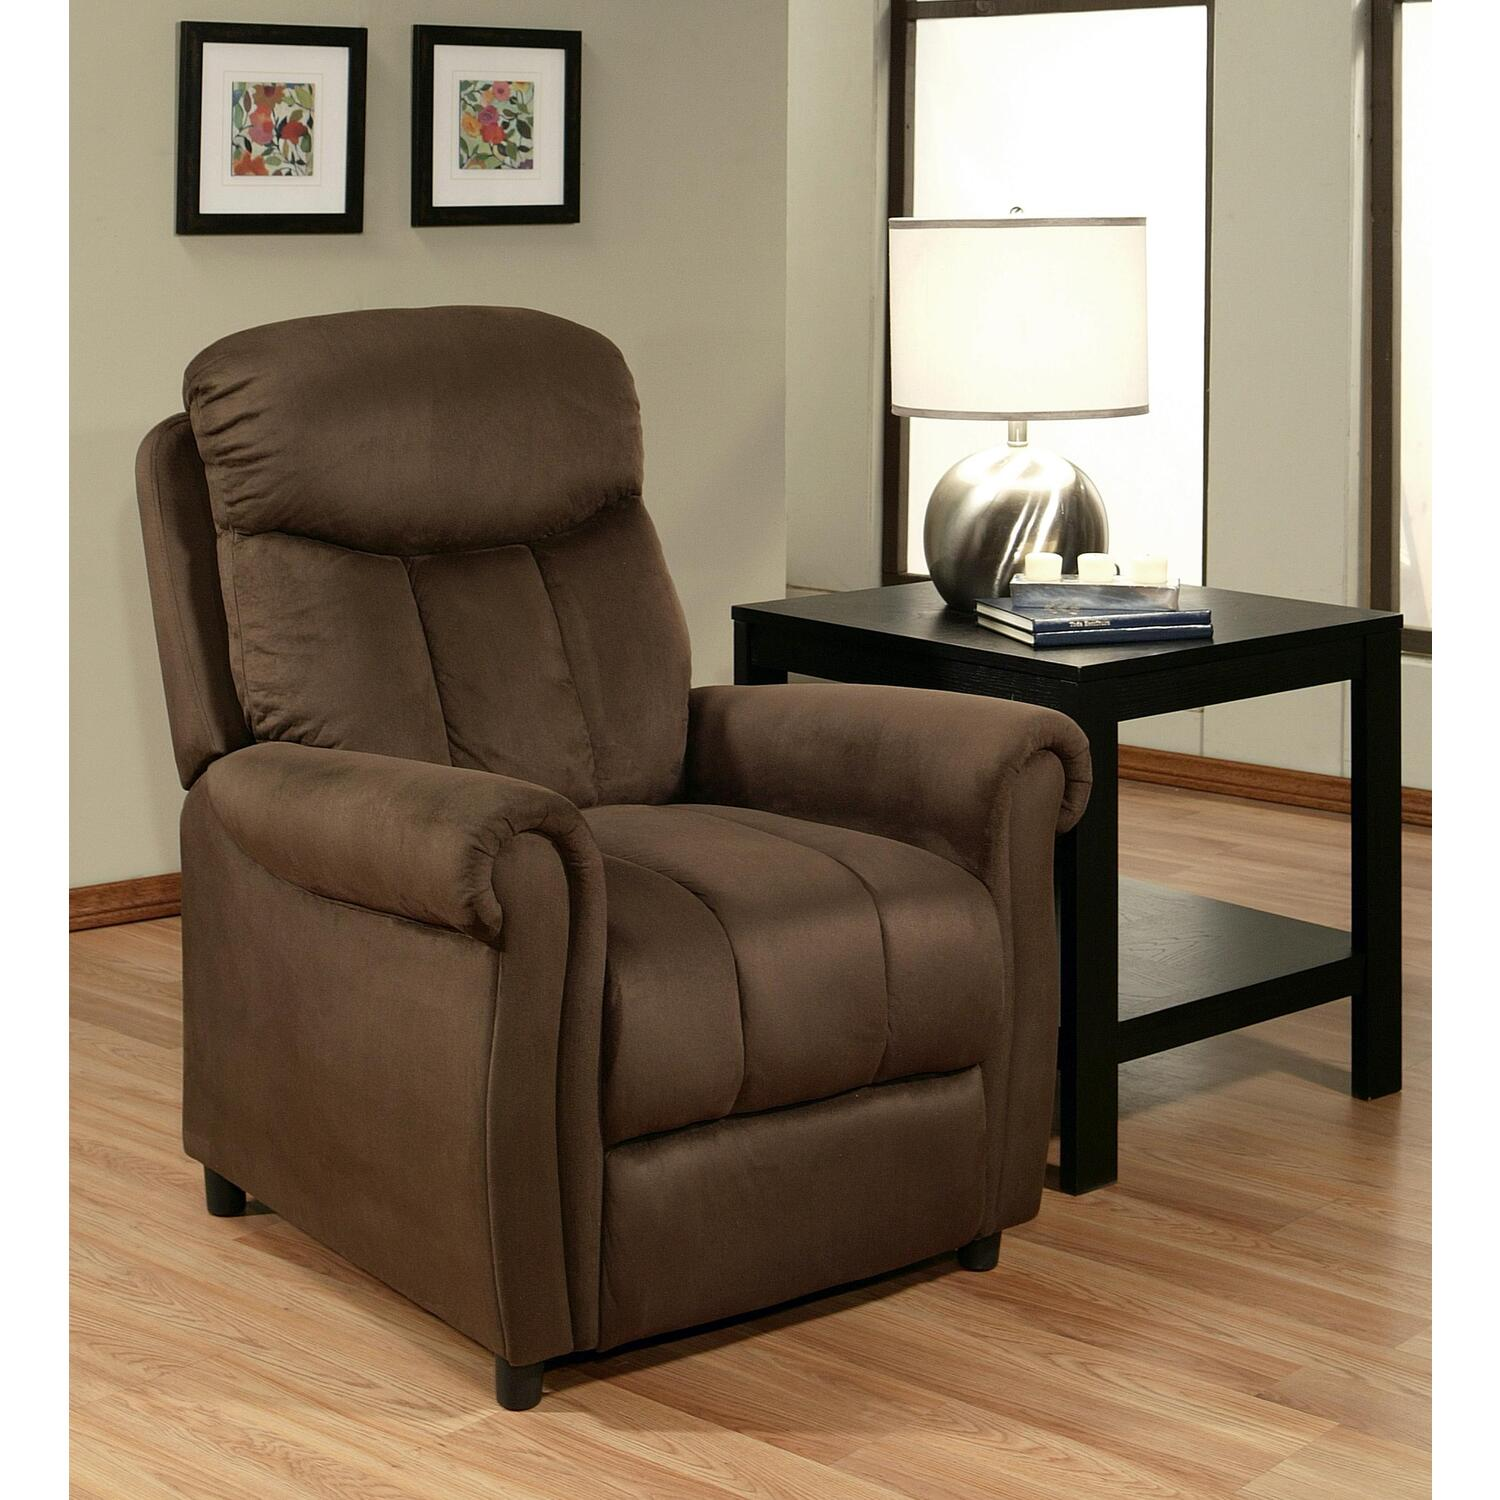 abbyson living microsuede pushback recliner by oj commerce abbl209